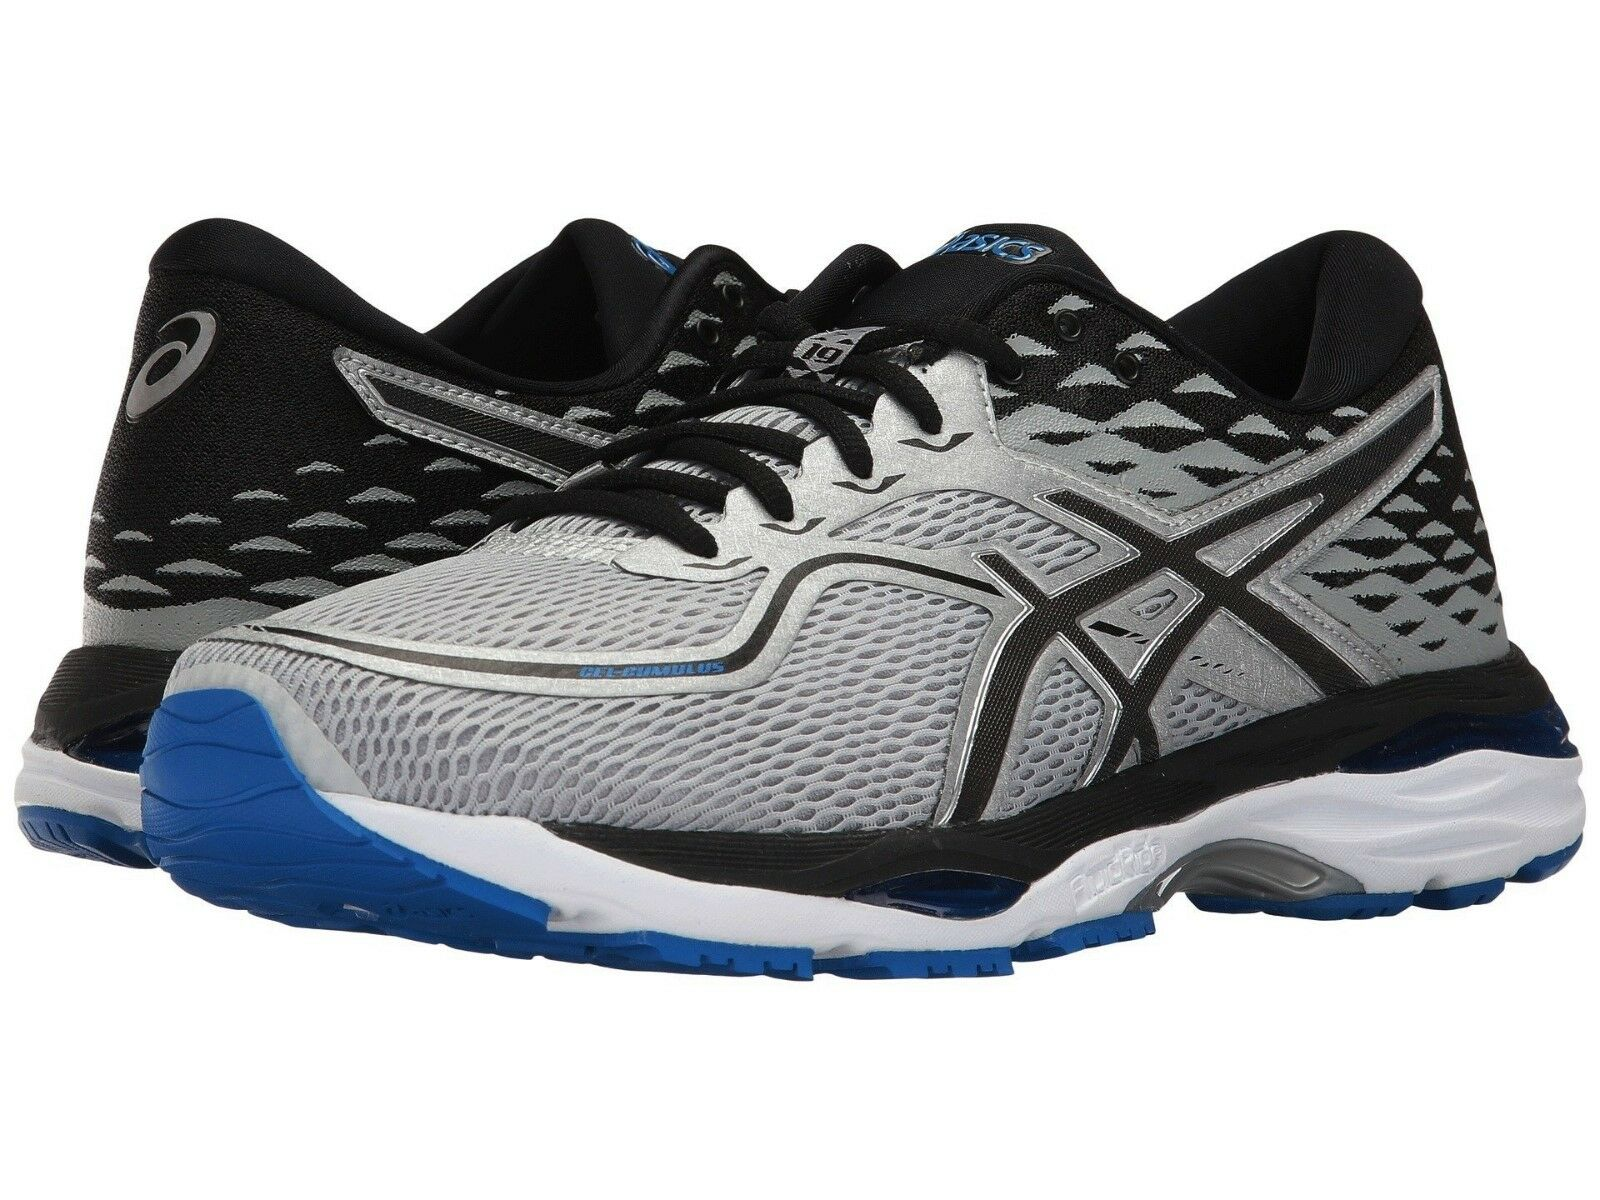 NEW Uomo ASICS GEL-CUMULUS 19 RUNNING/TRAINING AUTHENTIC SHOES - 9 / EUR 42.5 - AUTHENTIC RUNNING/TRAINING 253651